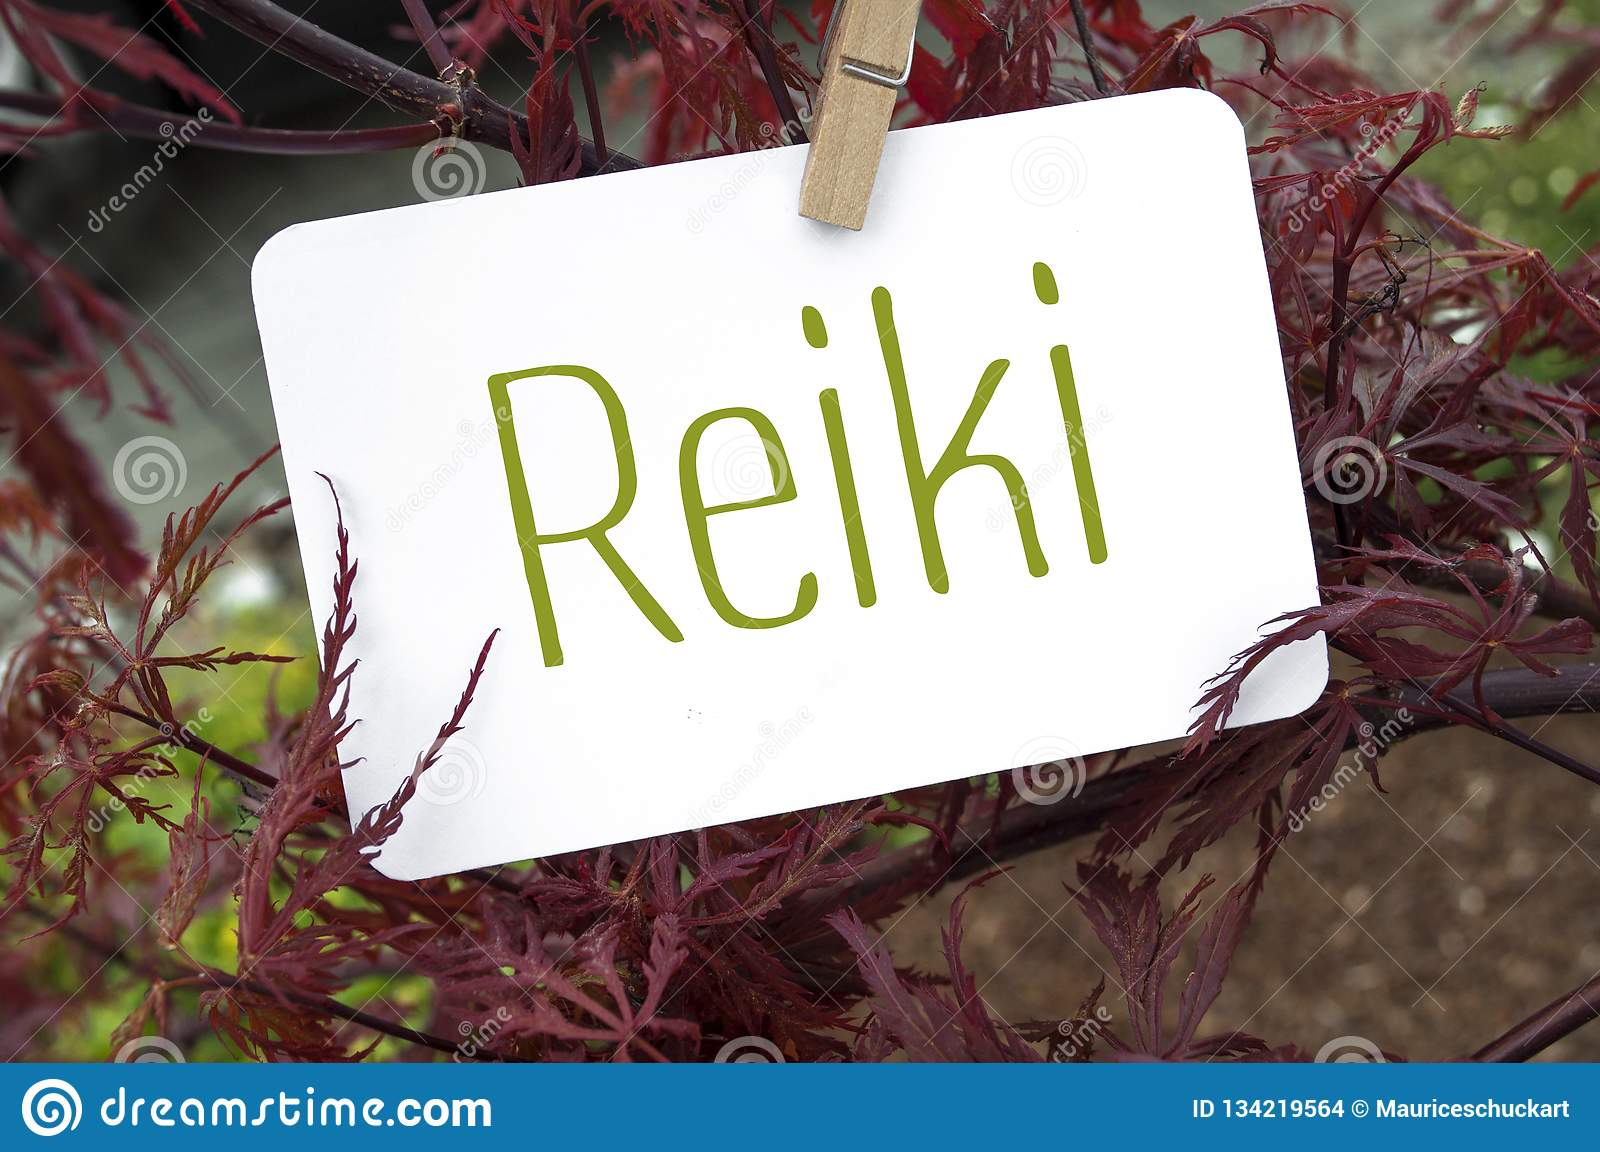 Maple with Reiki